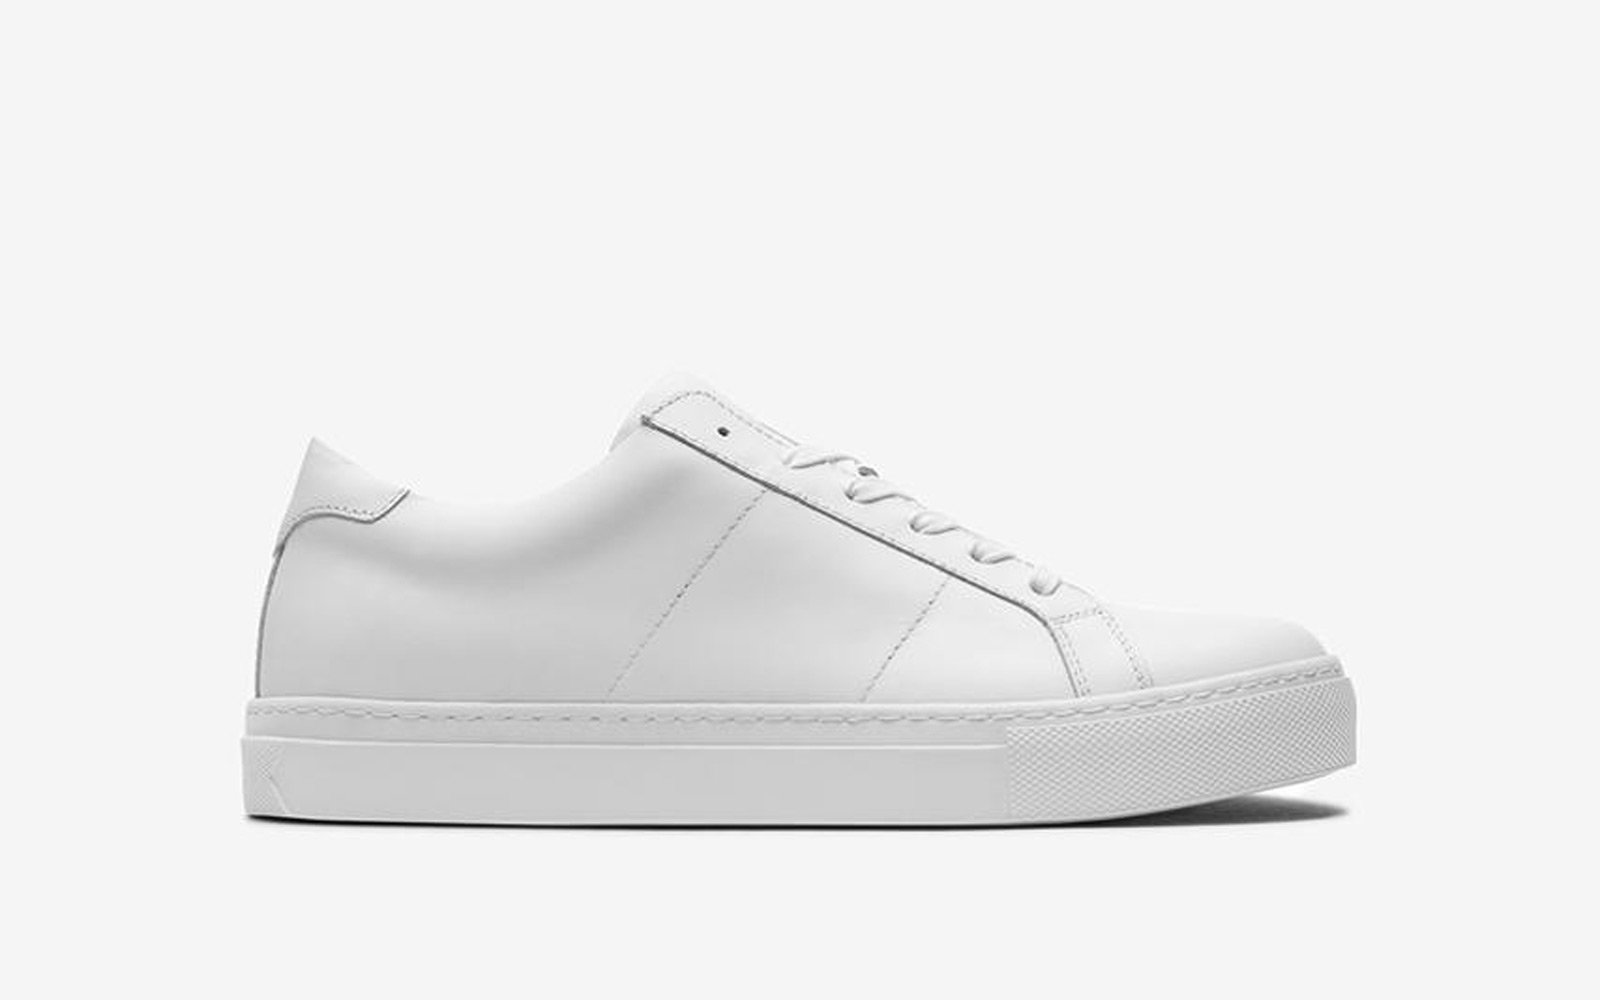 Greats Royale sneaker at Madewell